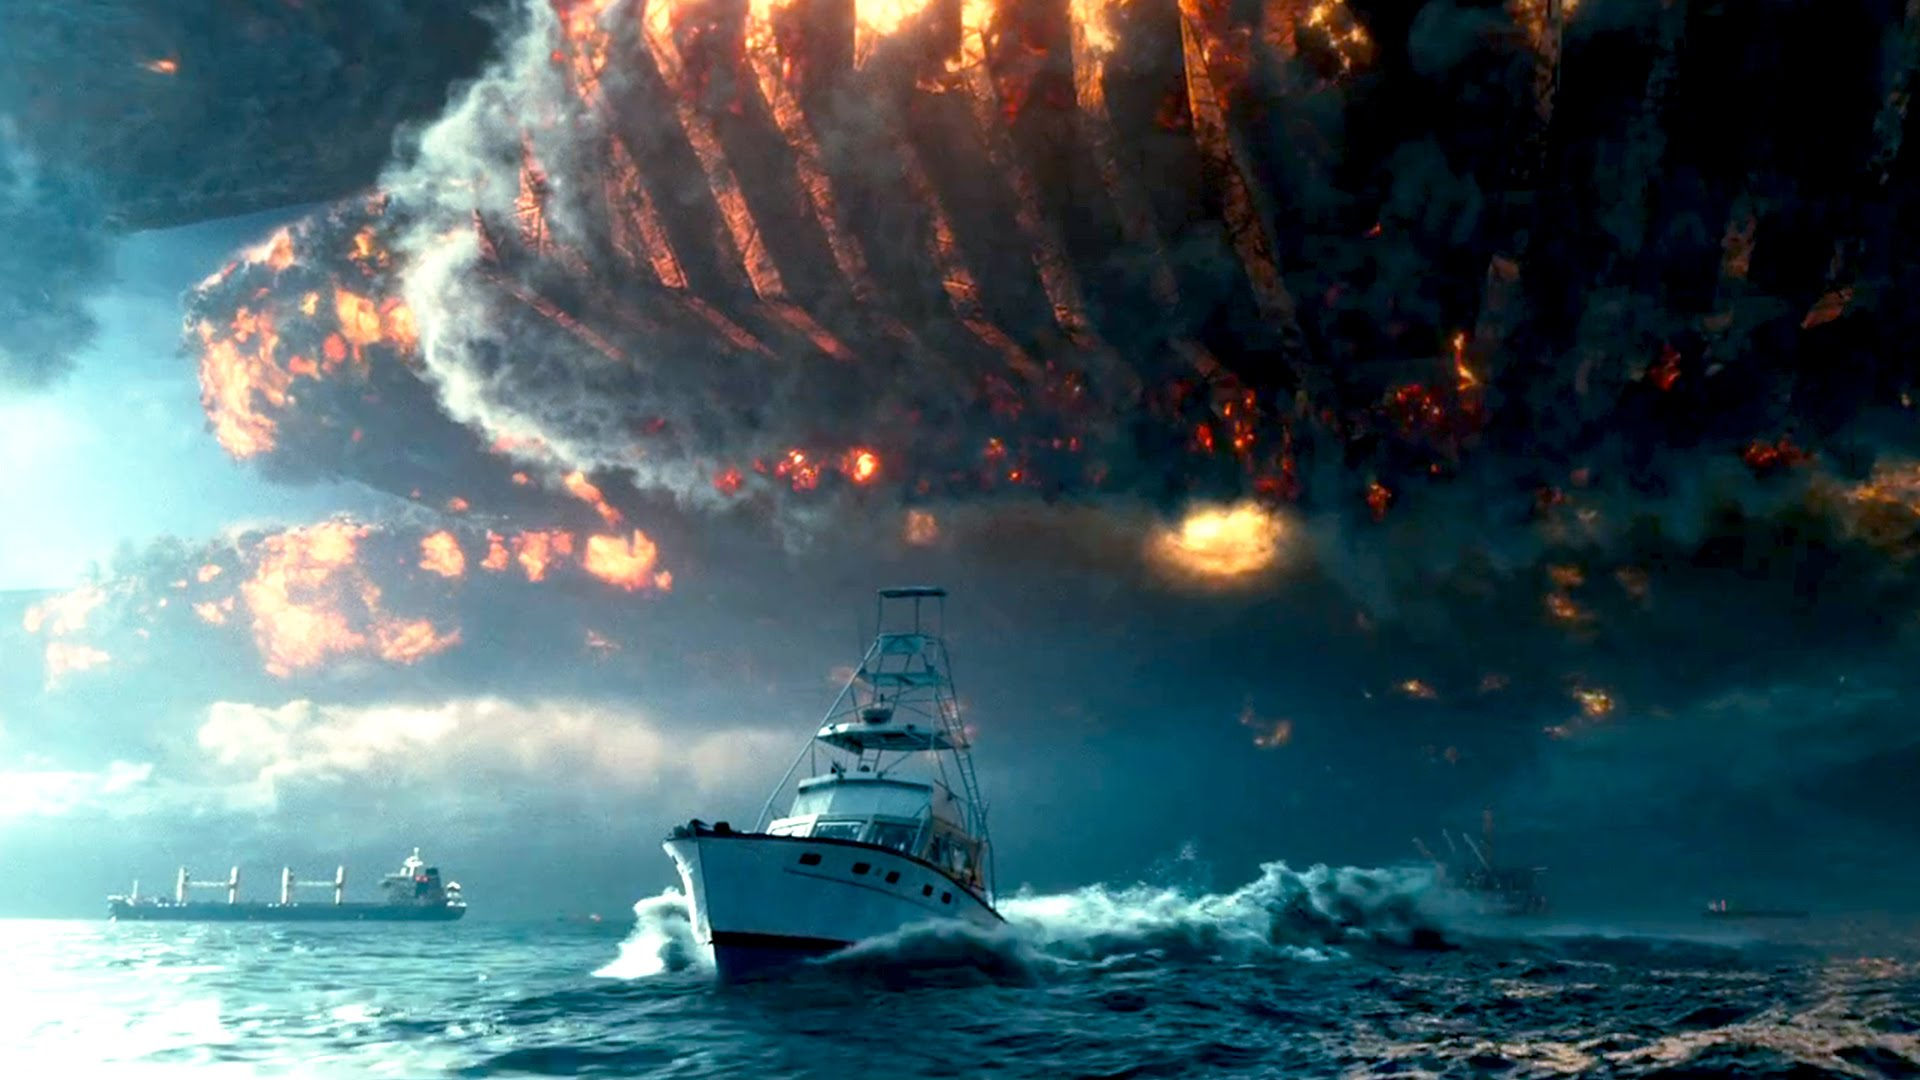 INDEPENDENCE DAY 2 REVIEW